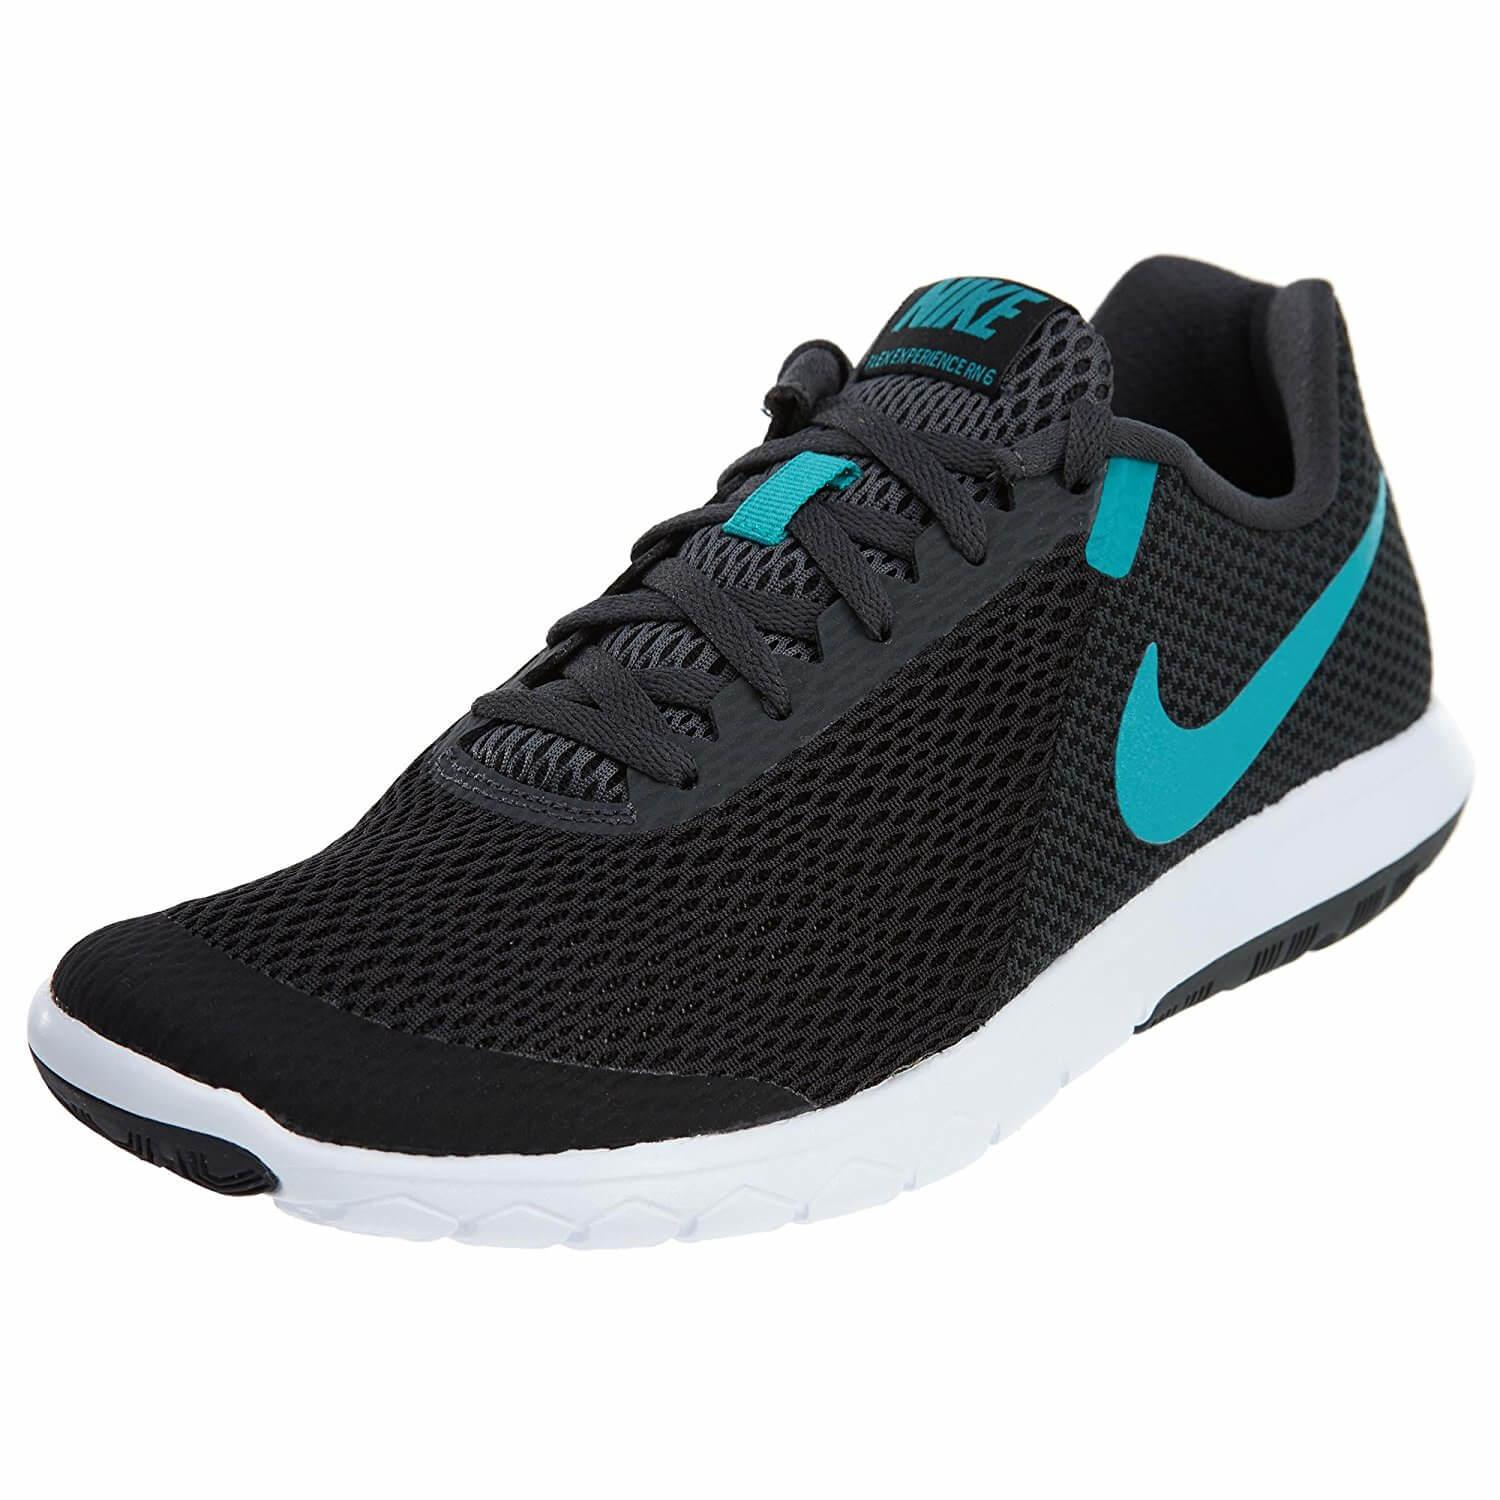 Nike Flex Experience Run  Running Shoes Review